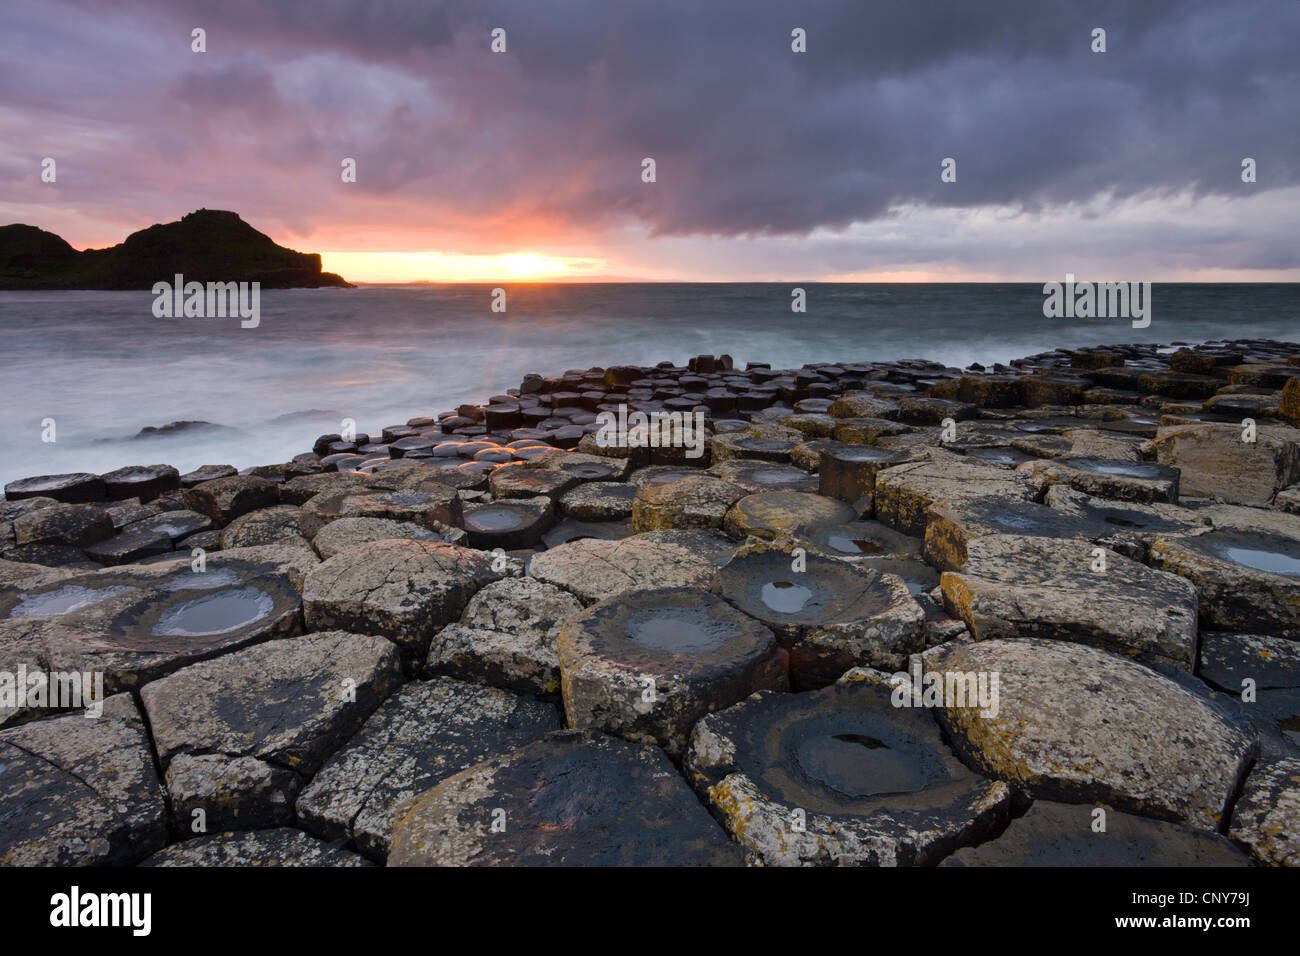 Sunset over the Giants Causeway, County Antrim, Northern Ireland - Stock Image